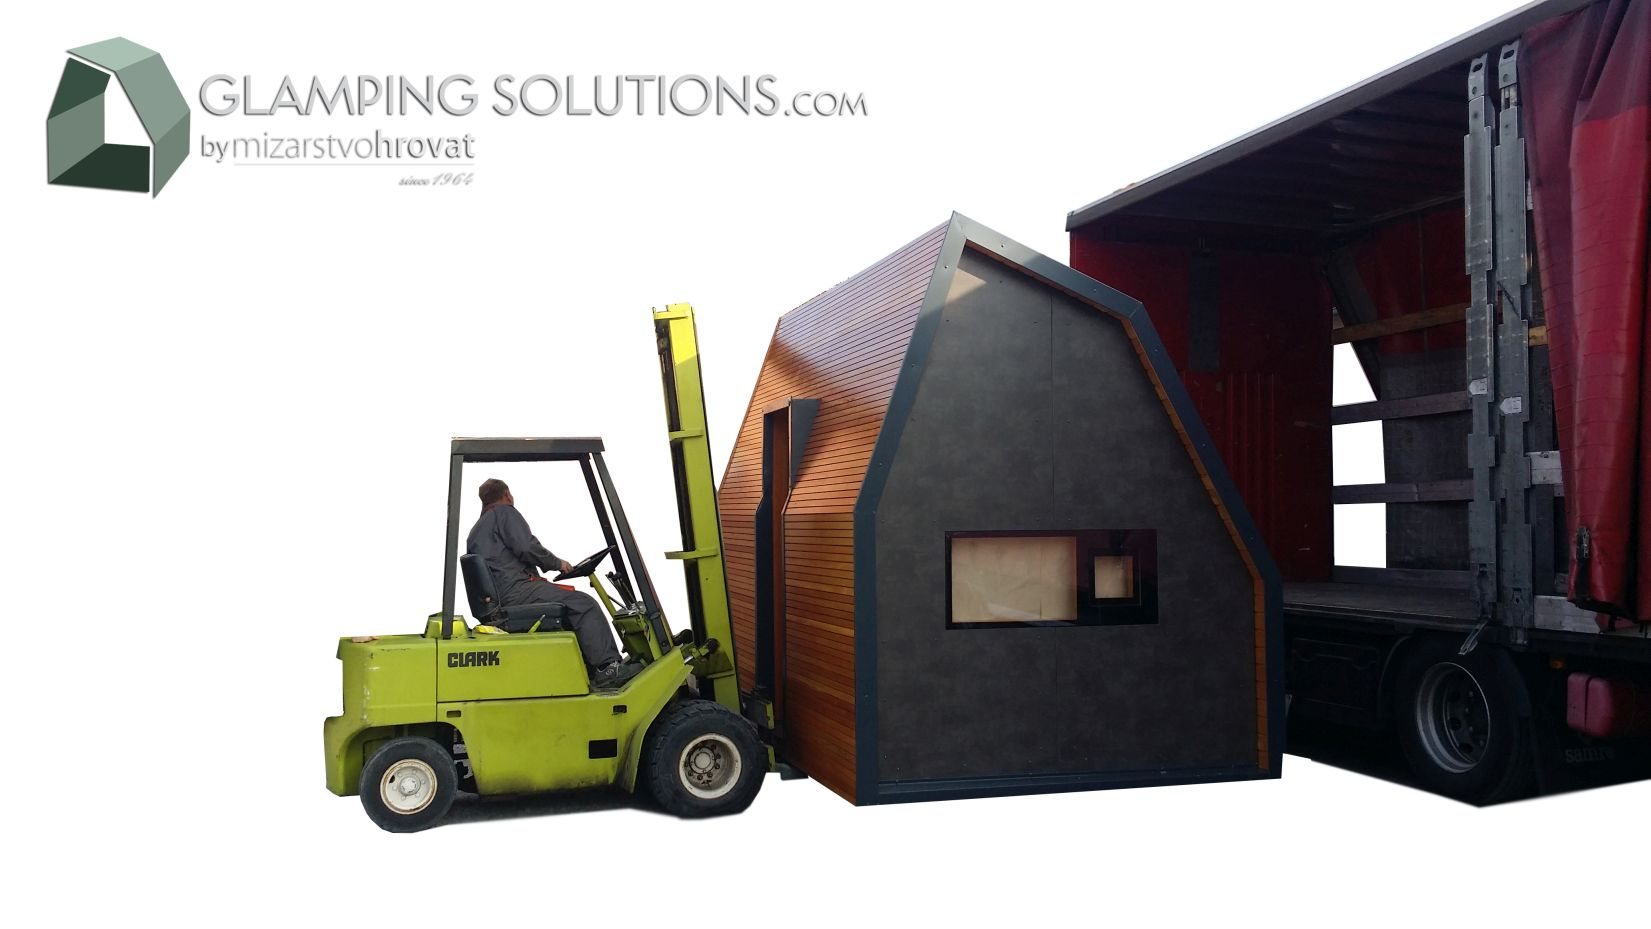 Glamping solutions - Transport